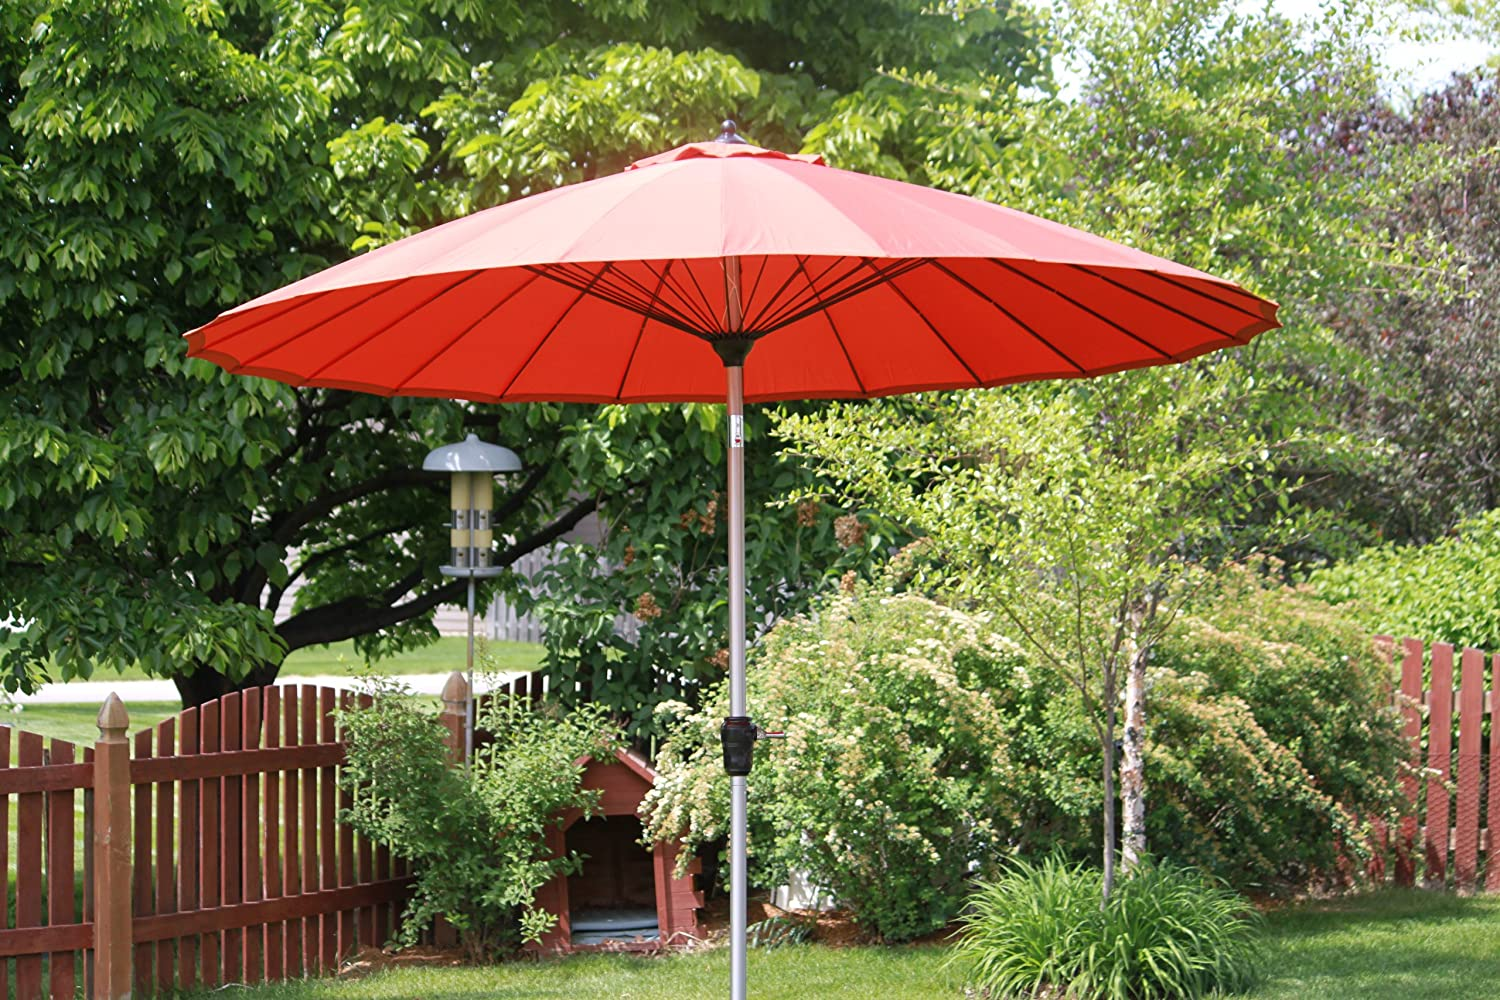 Amazon.com : Exclusive 24 Rib 9u0027 Wind Resistant Fiberglass Patio Umbrella    Tilt : Garden U0026 Outdoor